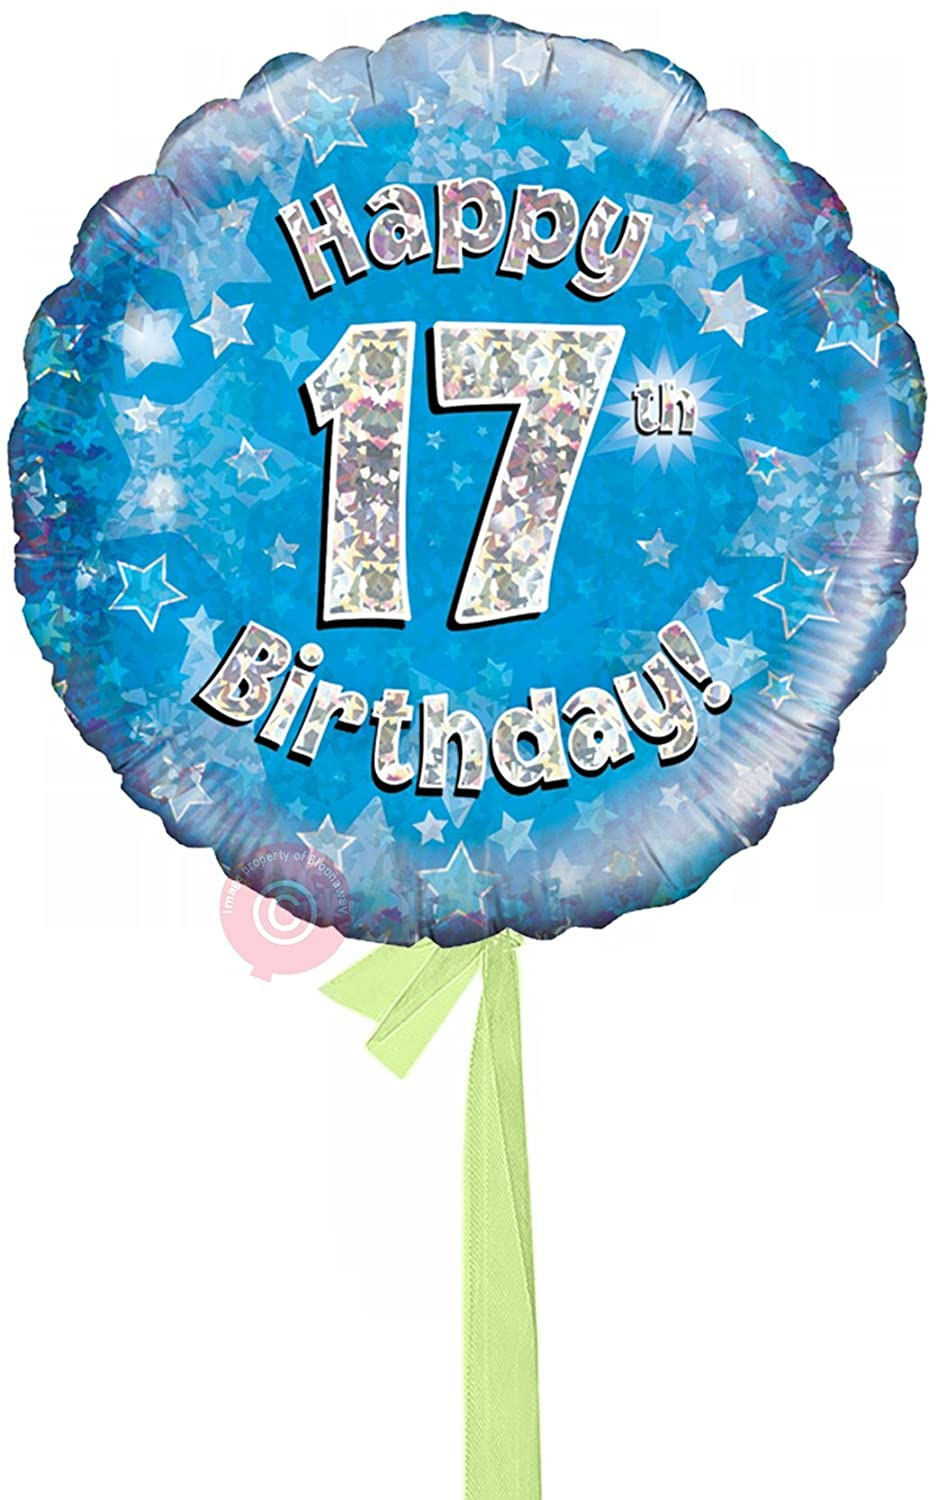 Single Balloon Num 17 Happy 17th Birthday bluee Holographic  Inflated Birthday Helium Balloon Delivered in a Box  Biggest Bouquet  10 Balloons  Bloonaway